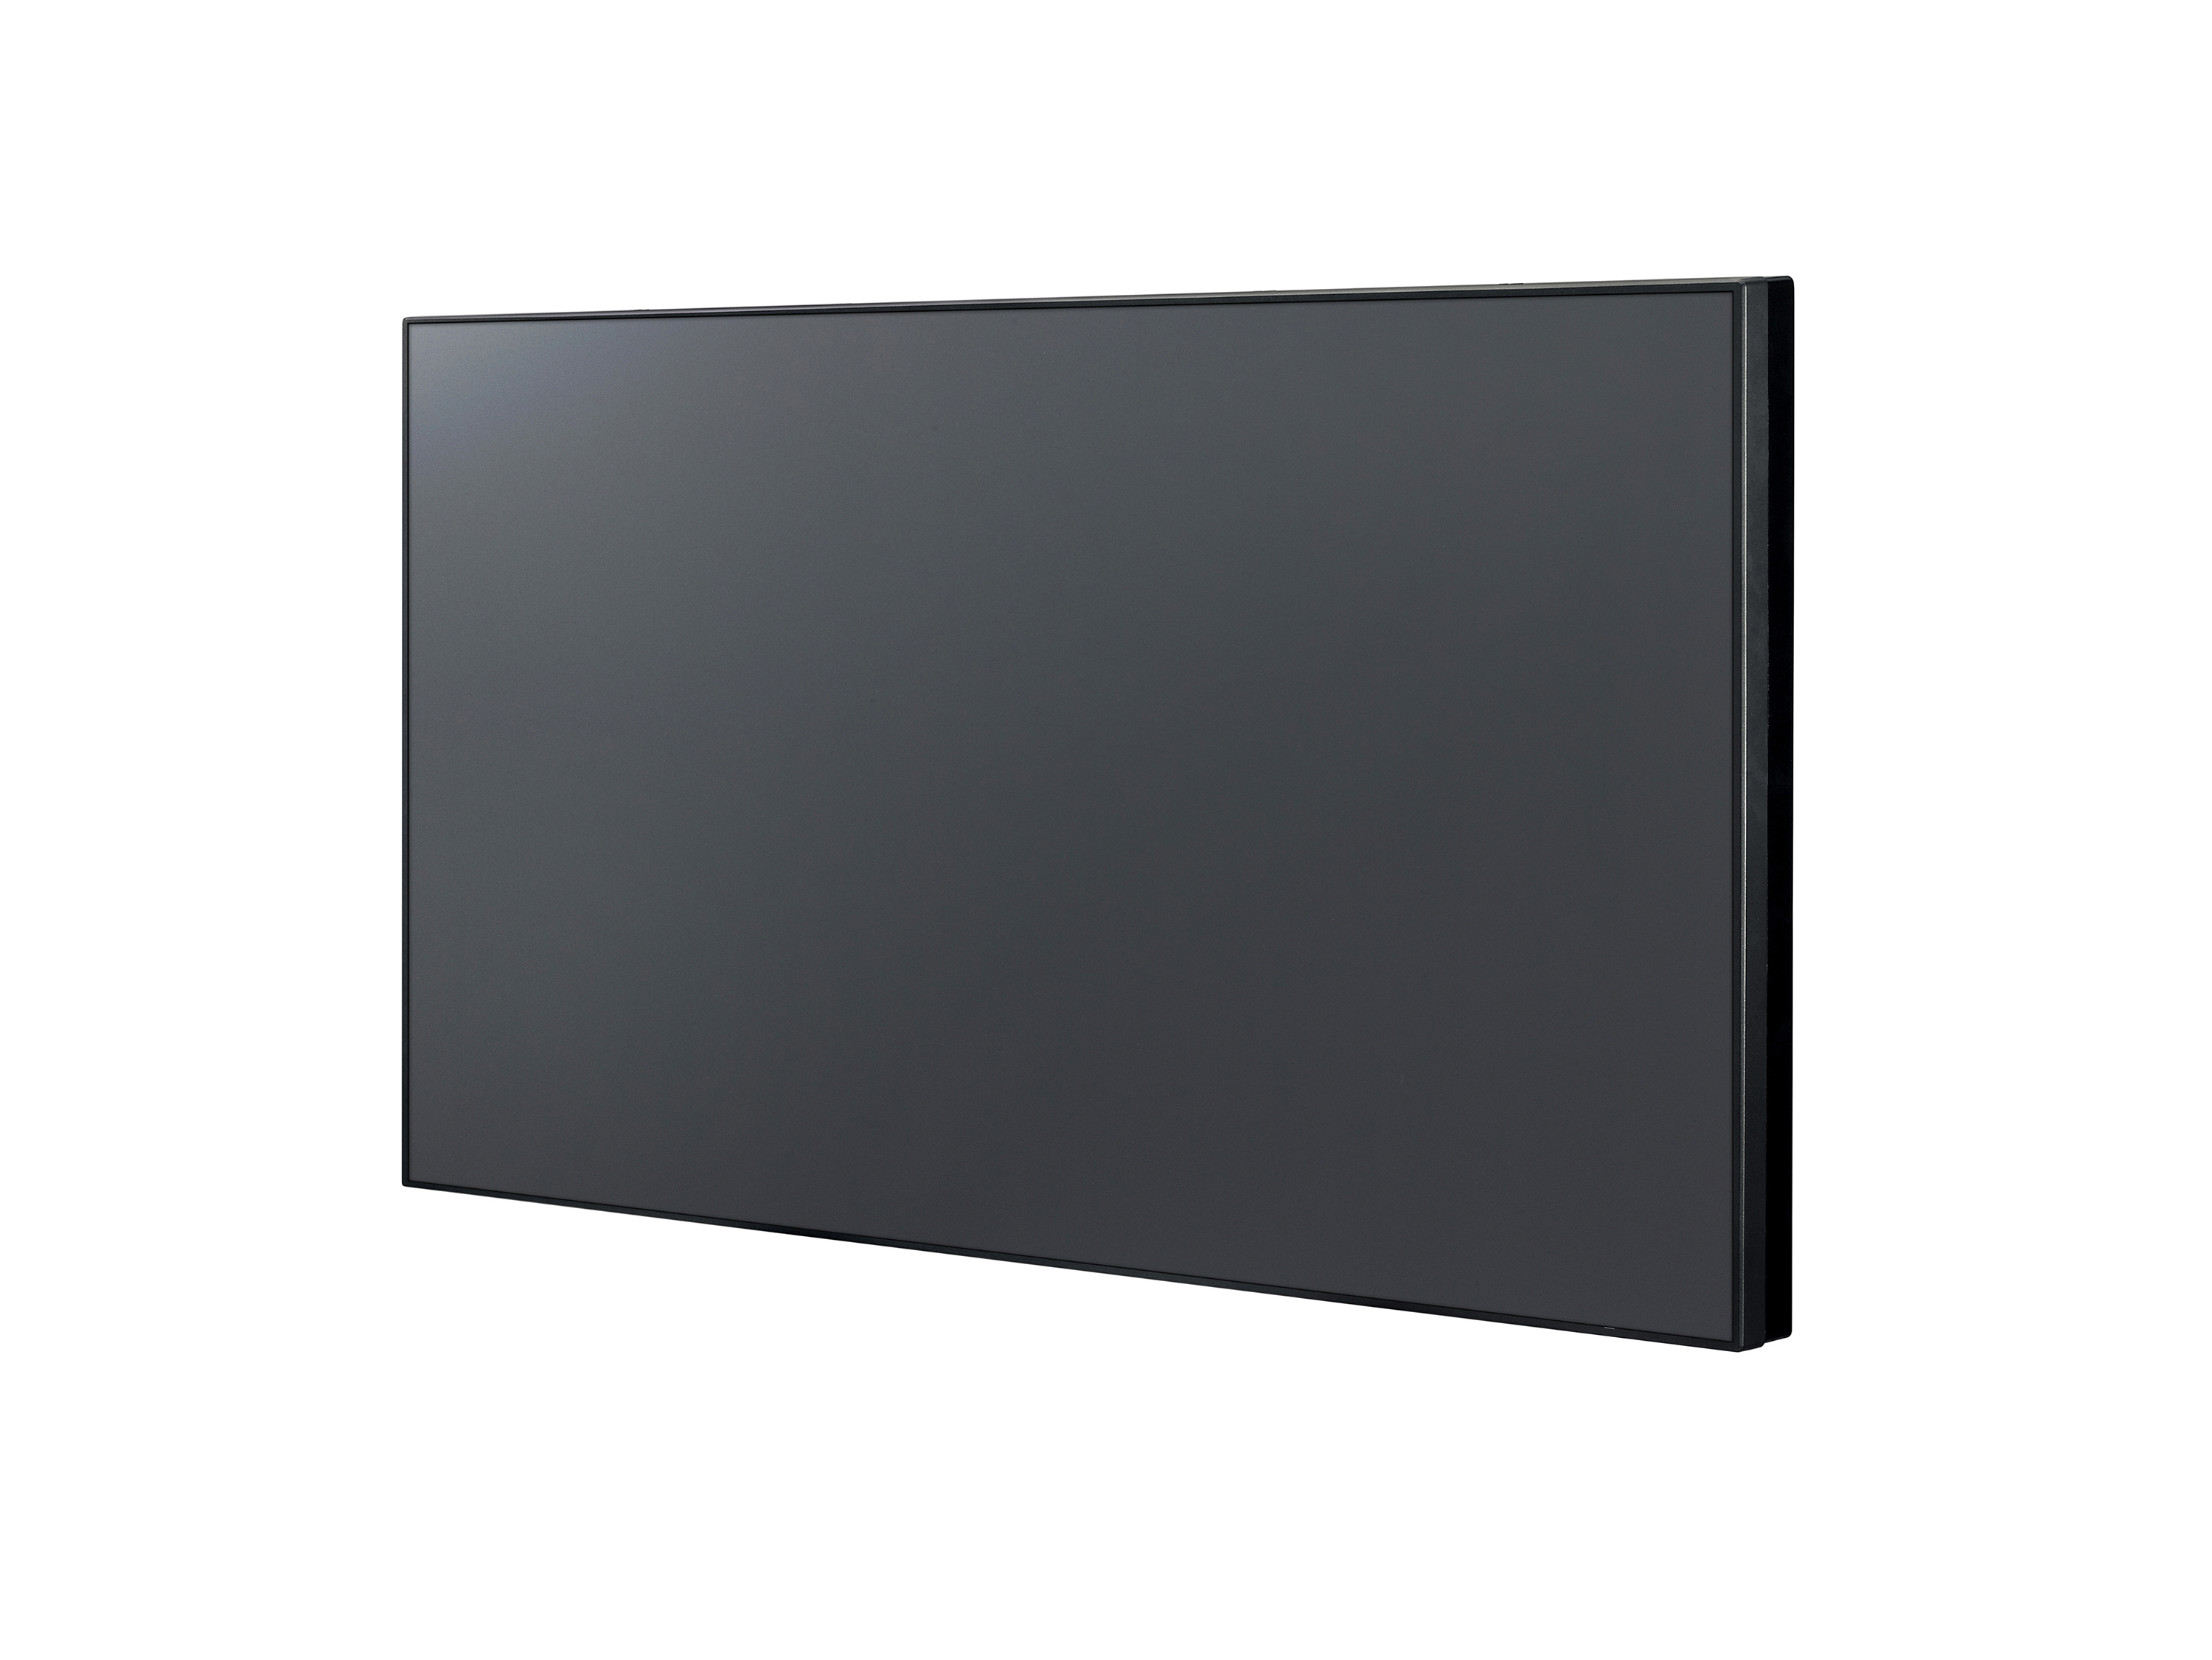 PANASONIC TH-55LFV70W ULTRA NARROW BEZEL D-LED ROBUST DISPLAY